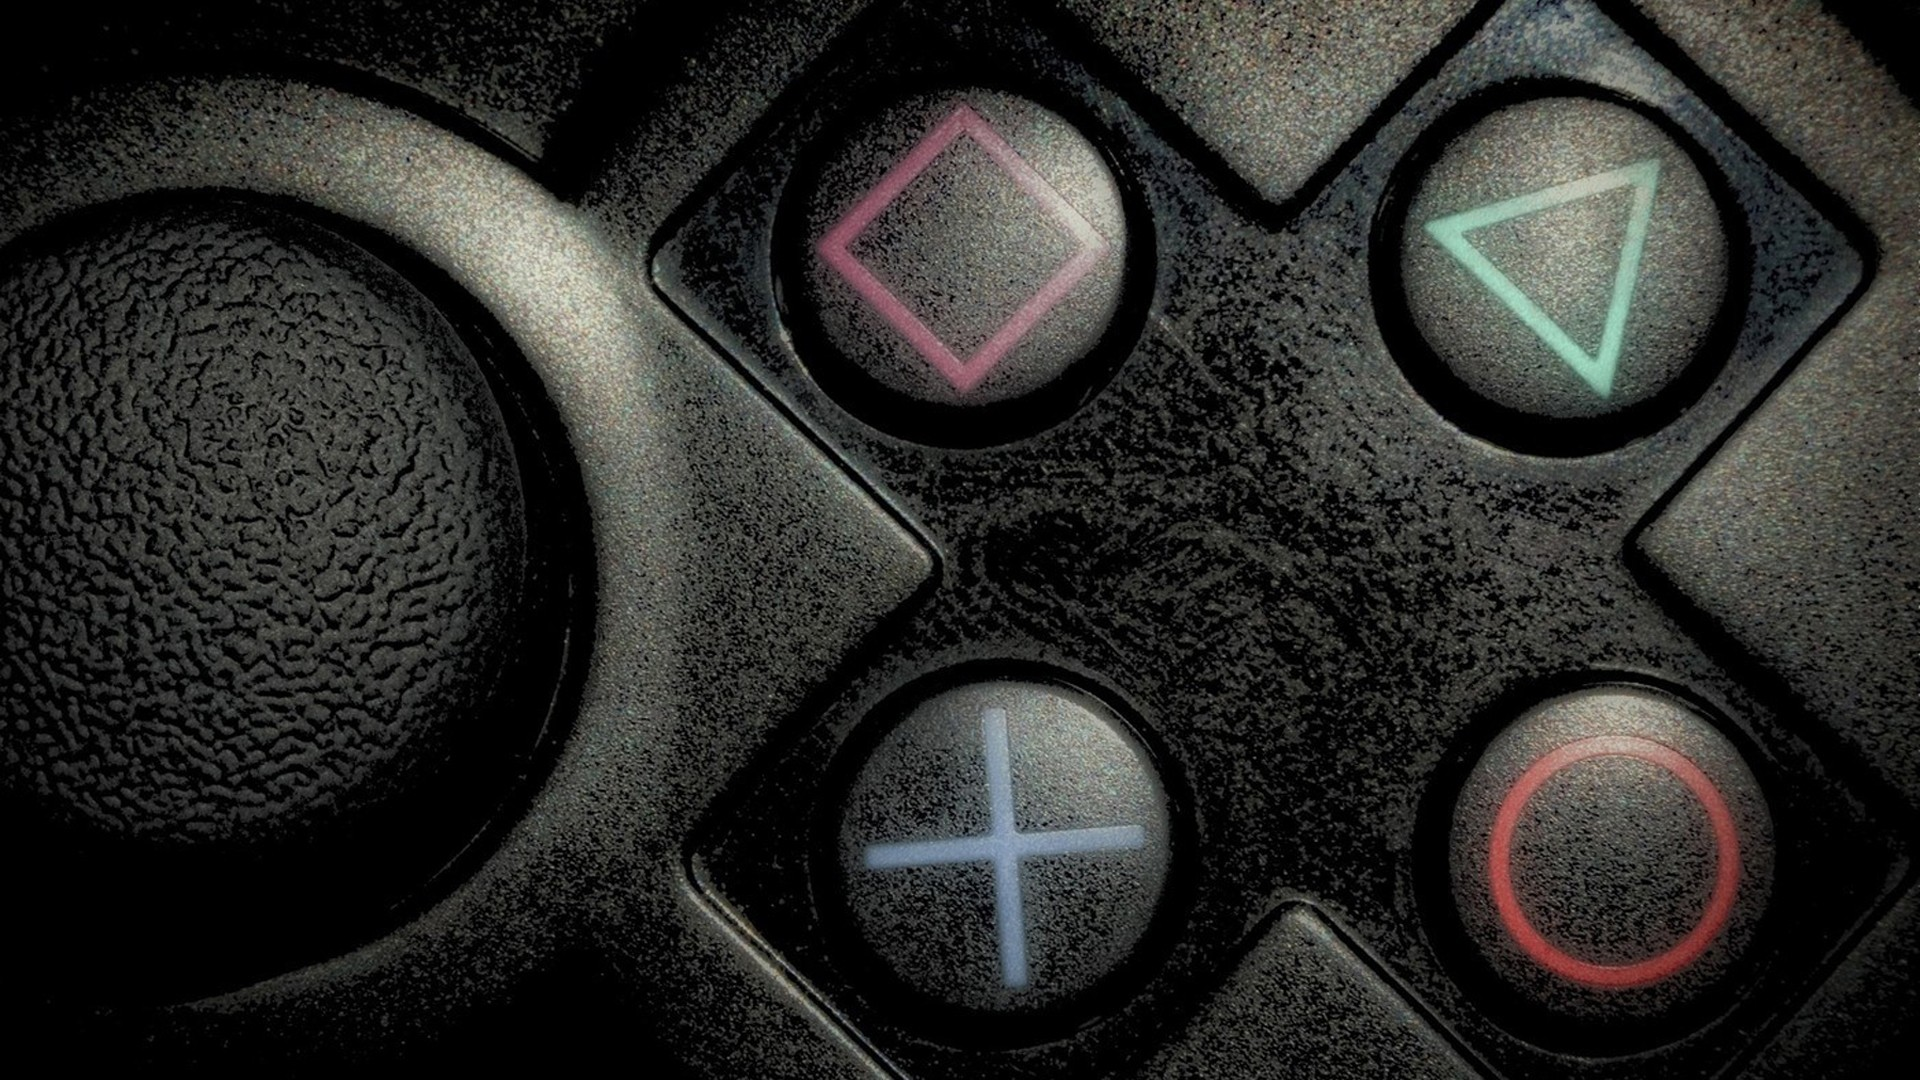 Video Games Playstation Buttons Controllers Playstation 2 Wallpaper 1920x1080 199471 Wallpaperup